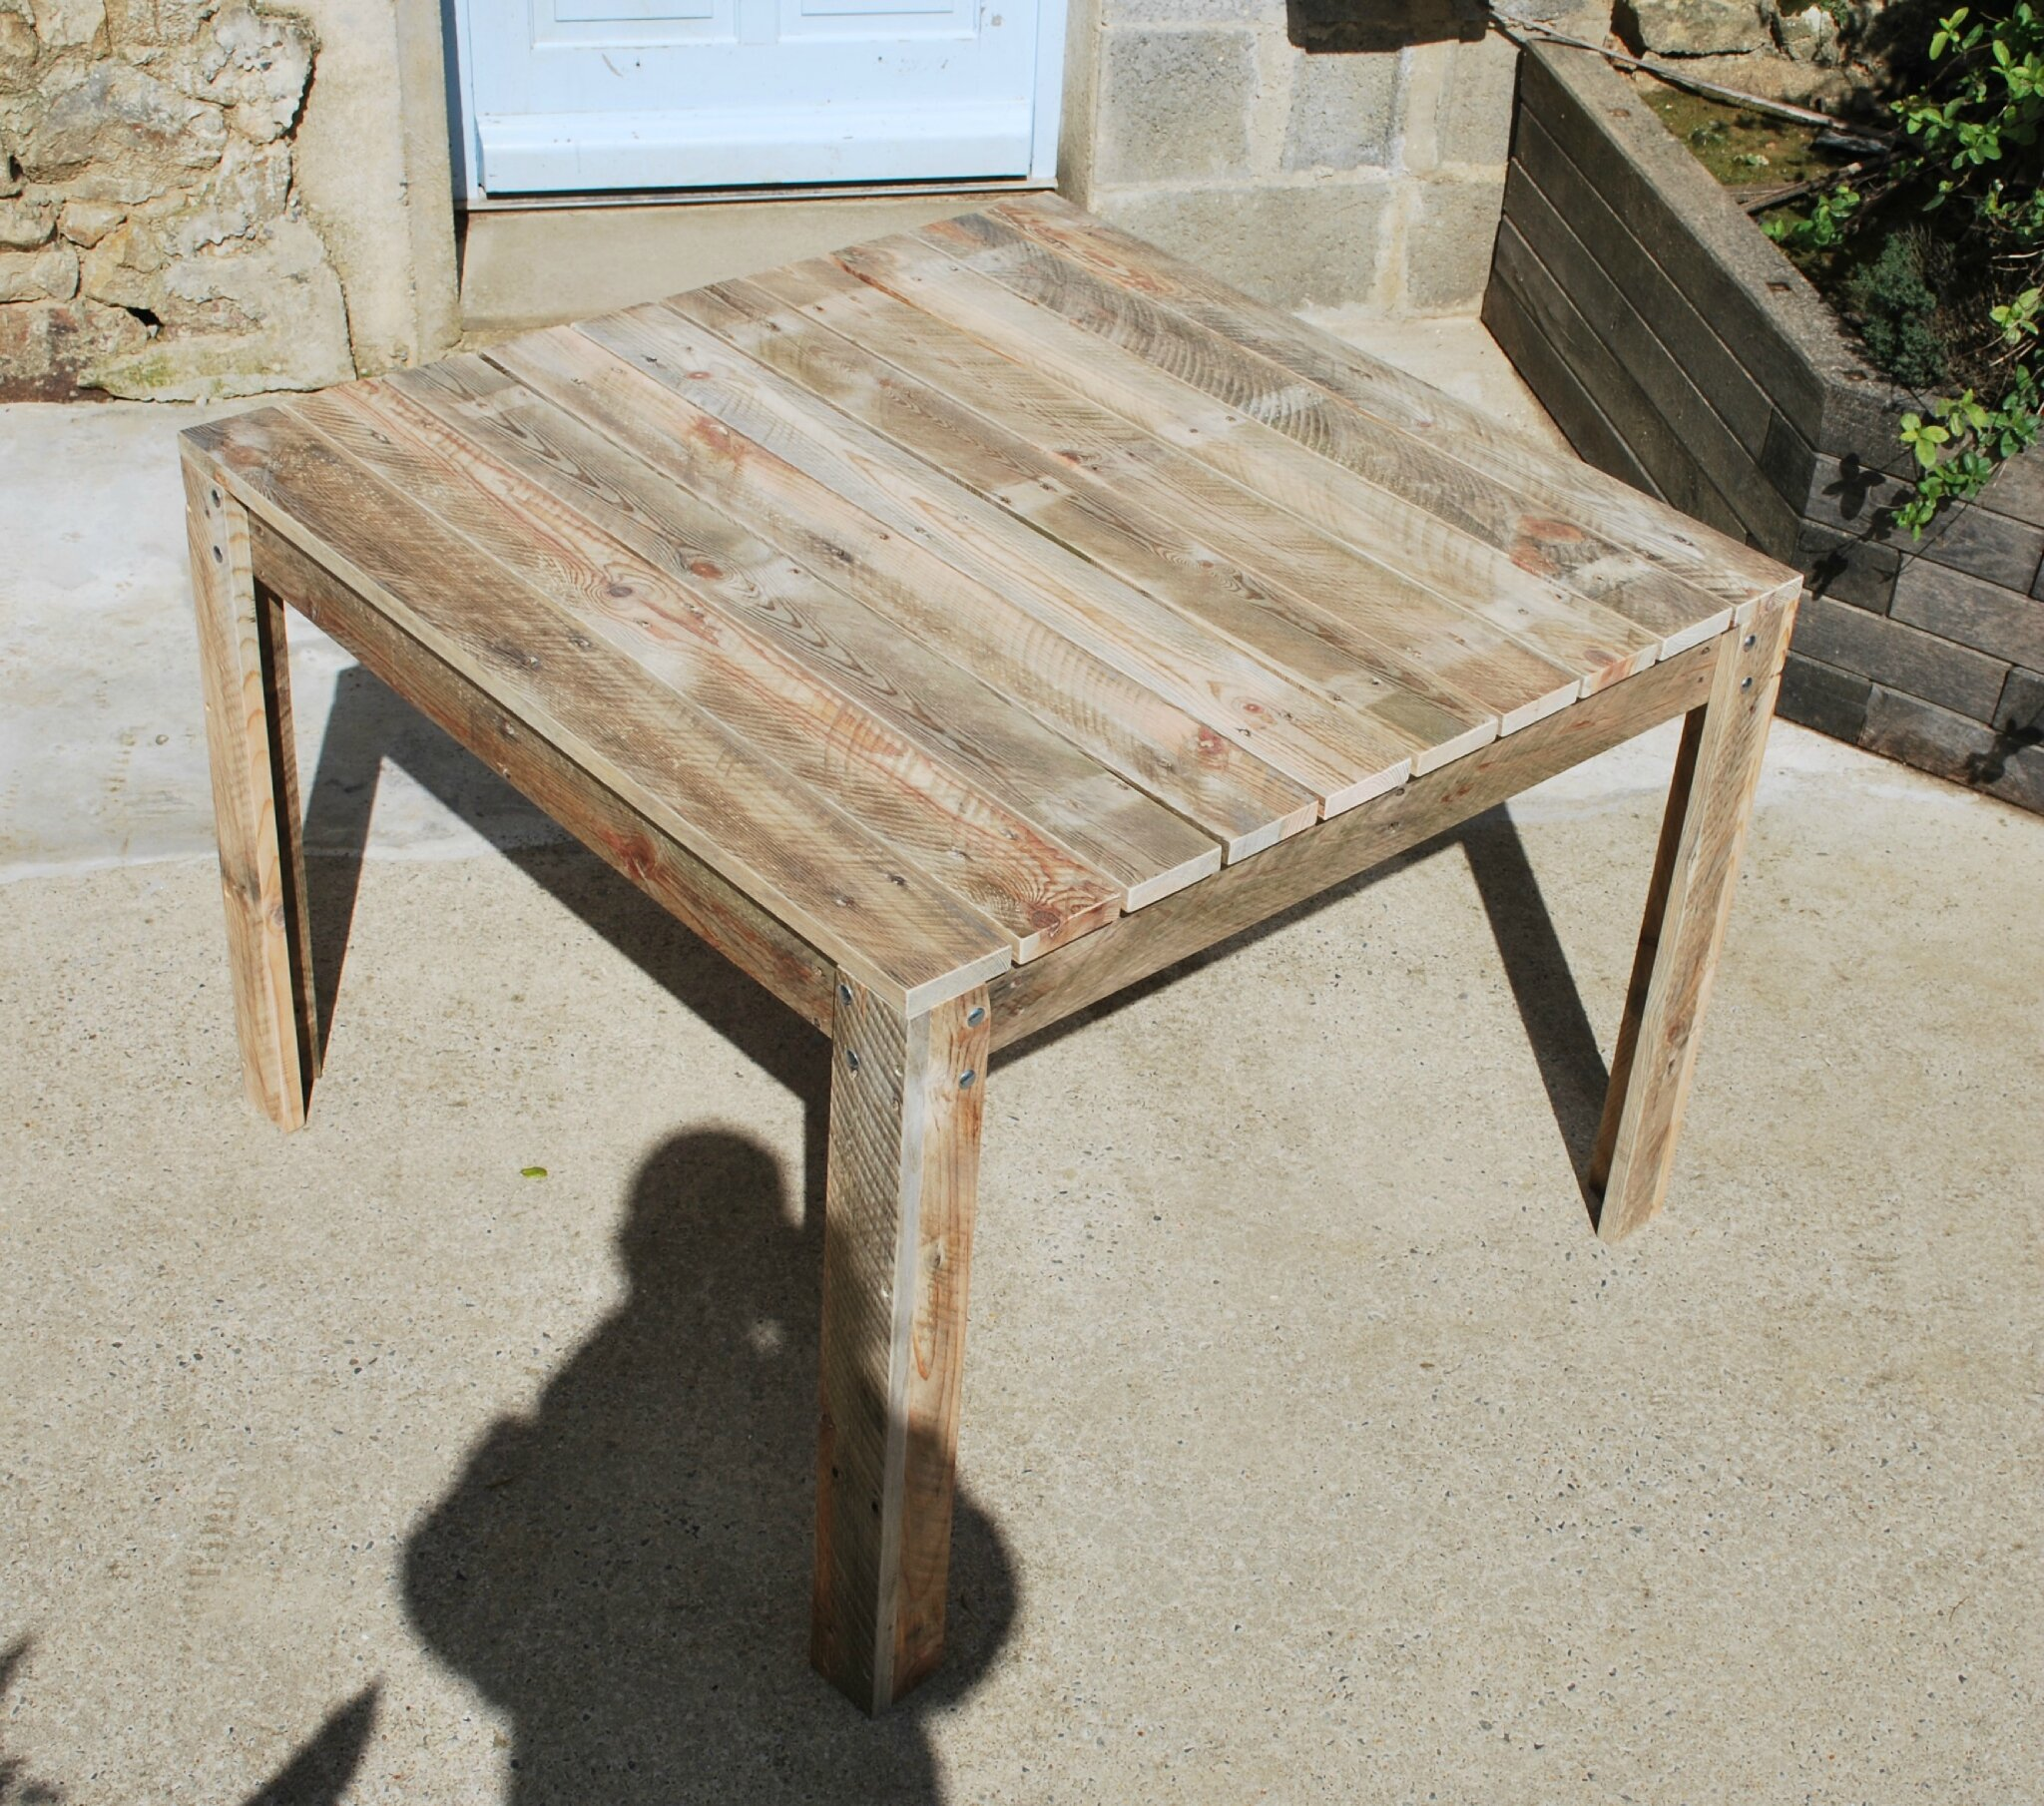 Salon De Jardin Made In France Table De Jardin En Palette Au Bout Du Bois